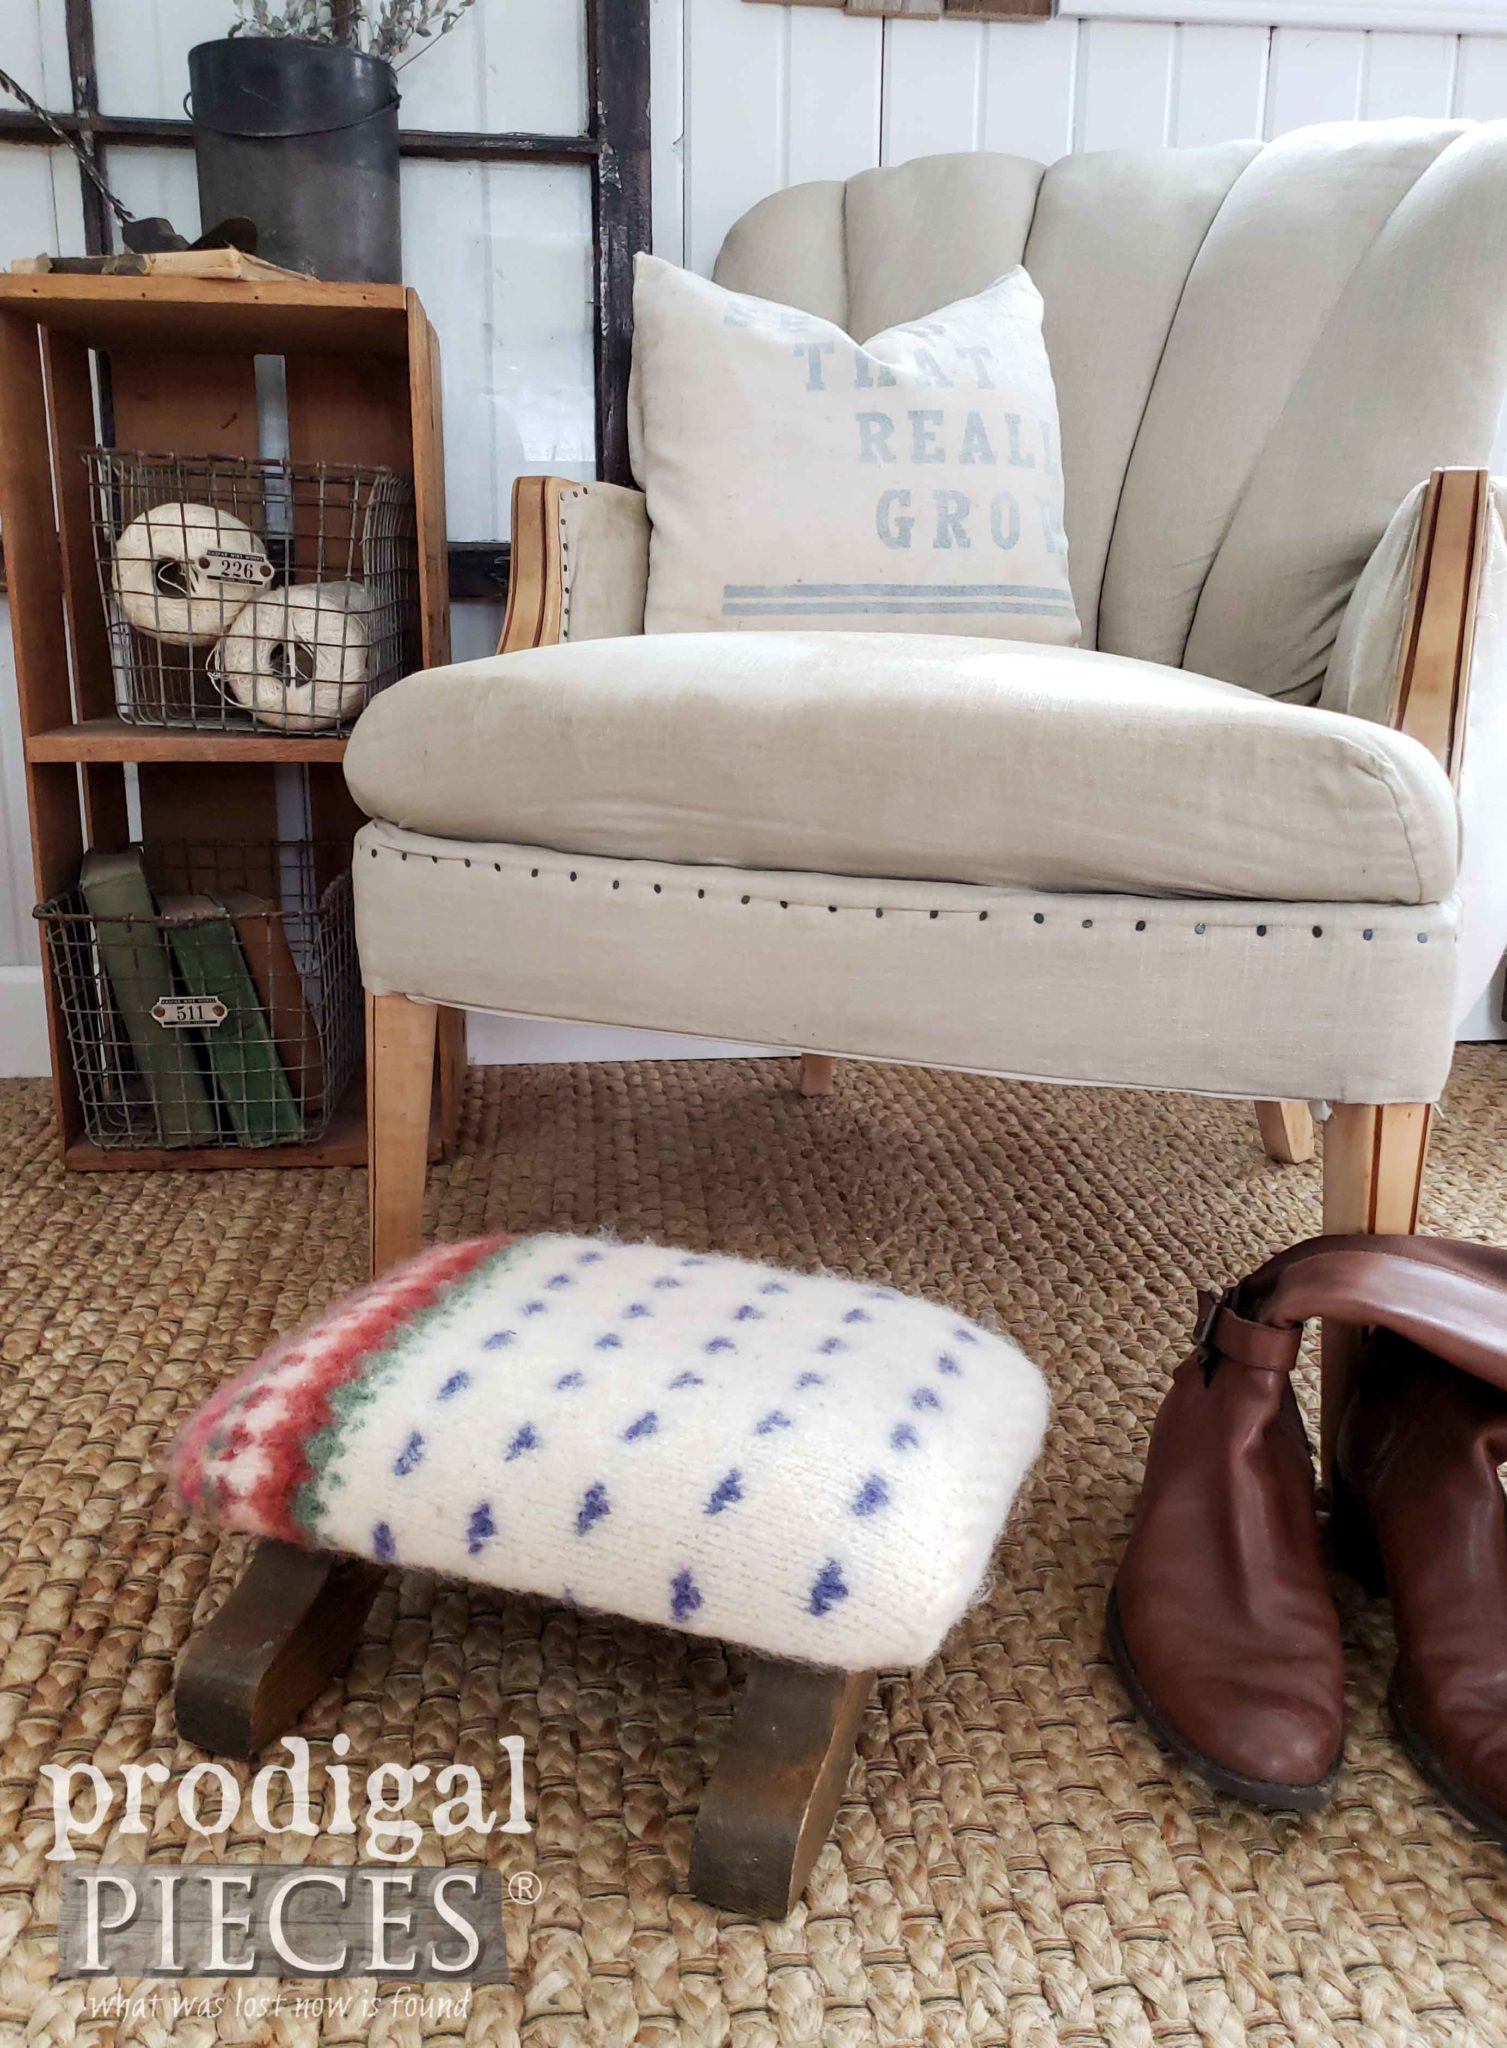 Nordic Farmhouse Style Felted Wool Footstool with Video Tutorial by Larissa of Prodigal Pieces | prodigalpieces.com #prodigalpieces #vintage #handmade #farmhouse #furniture #home #homedecor #homedecorideas #shopping